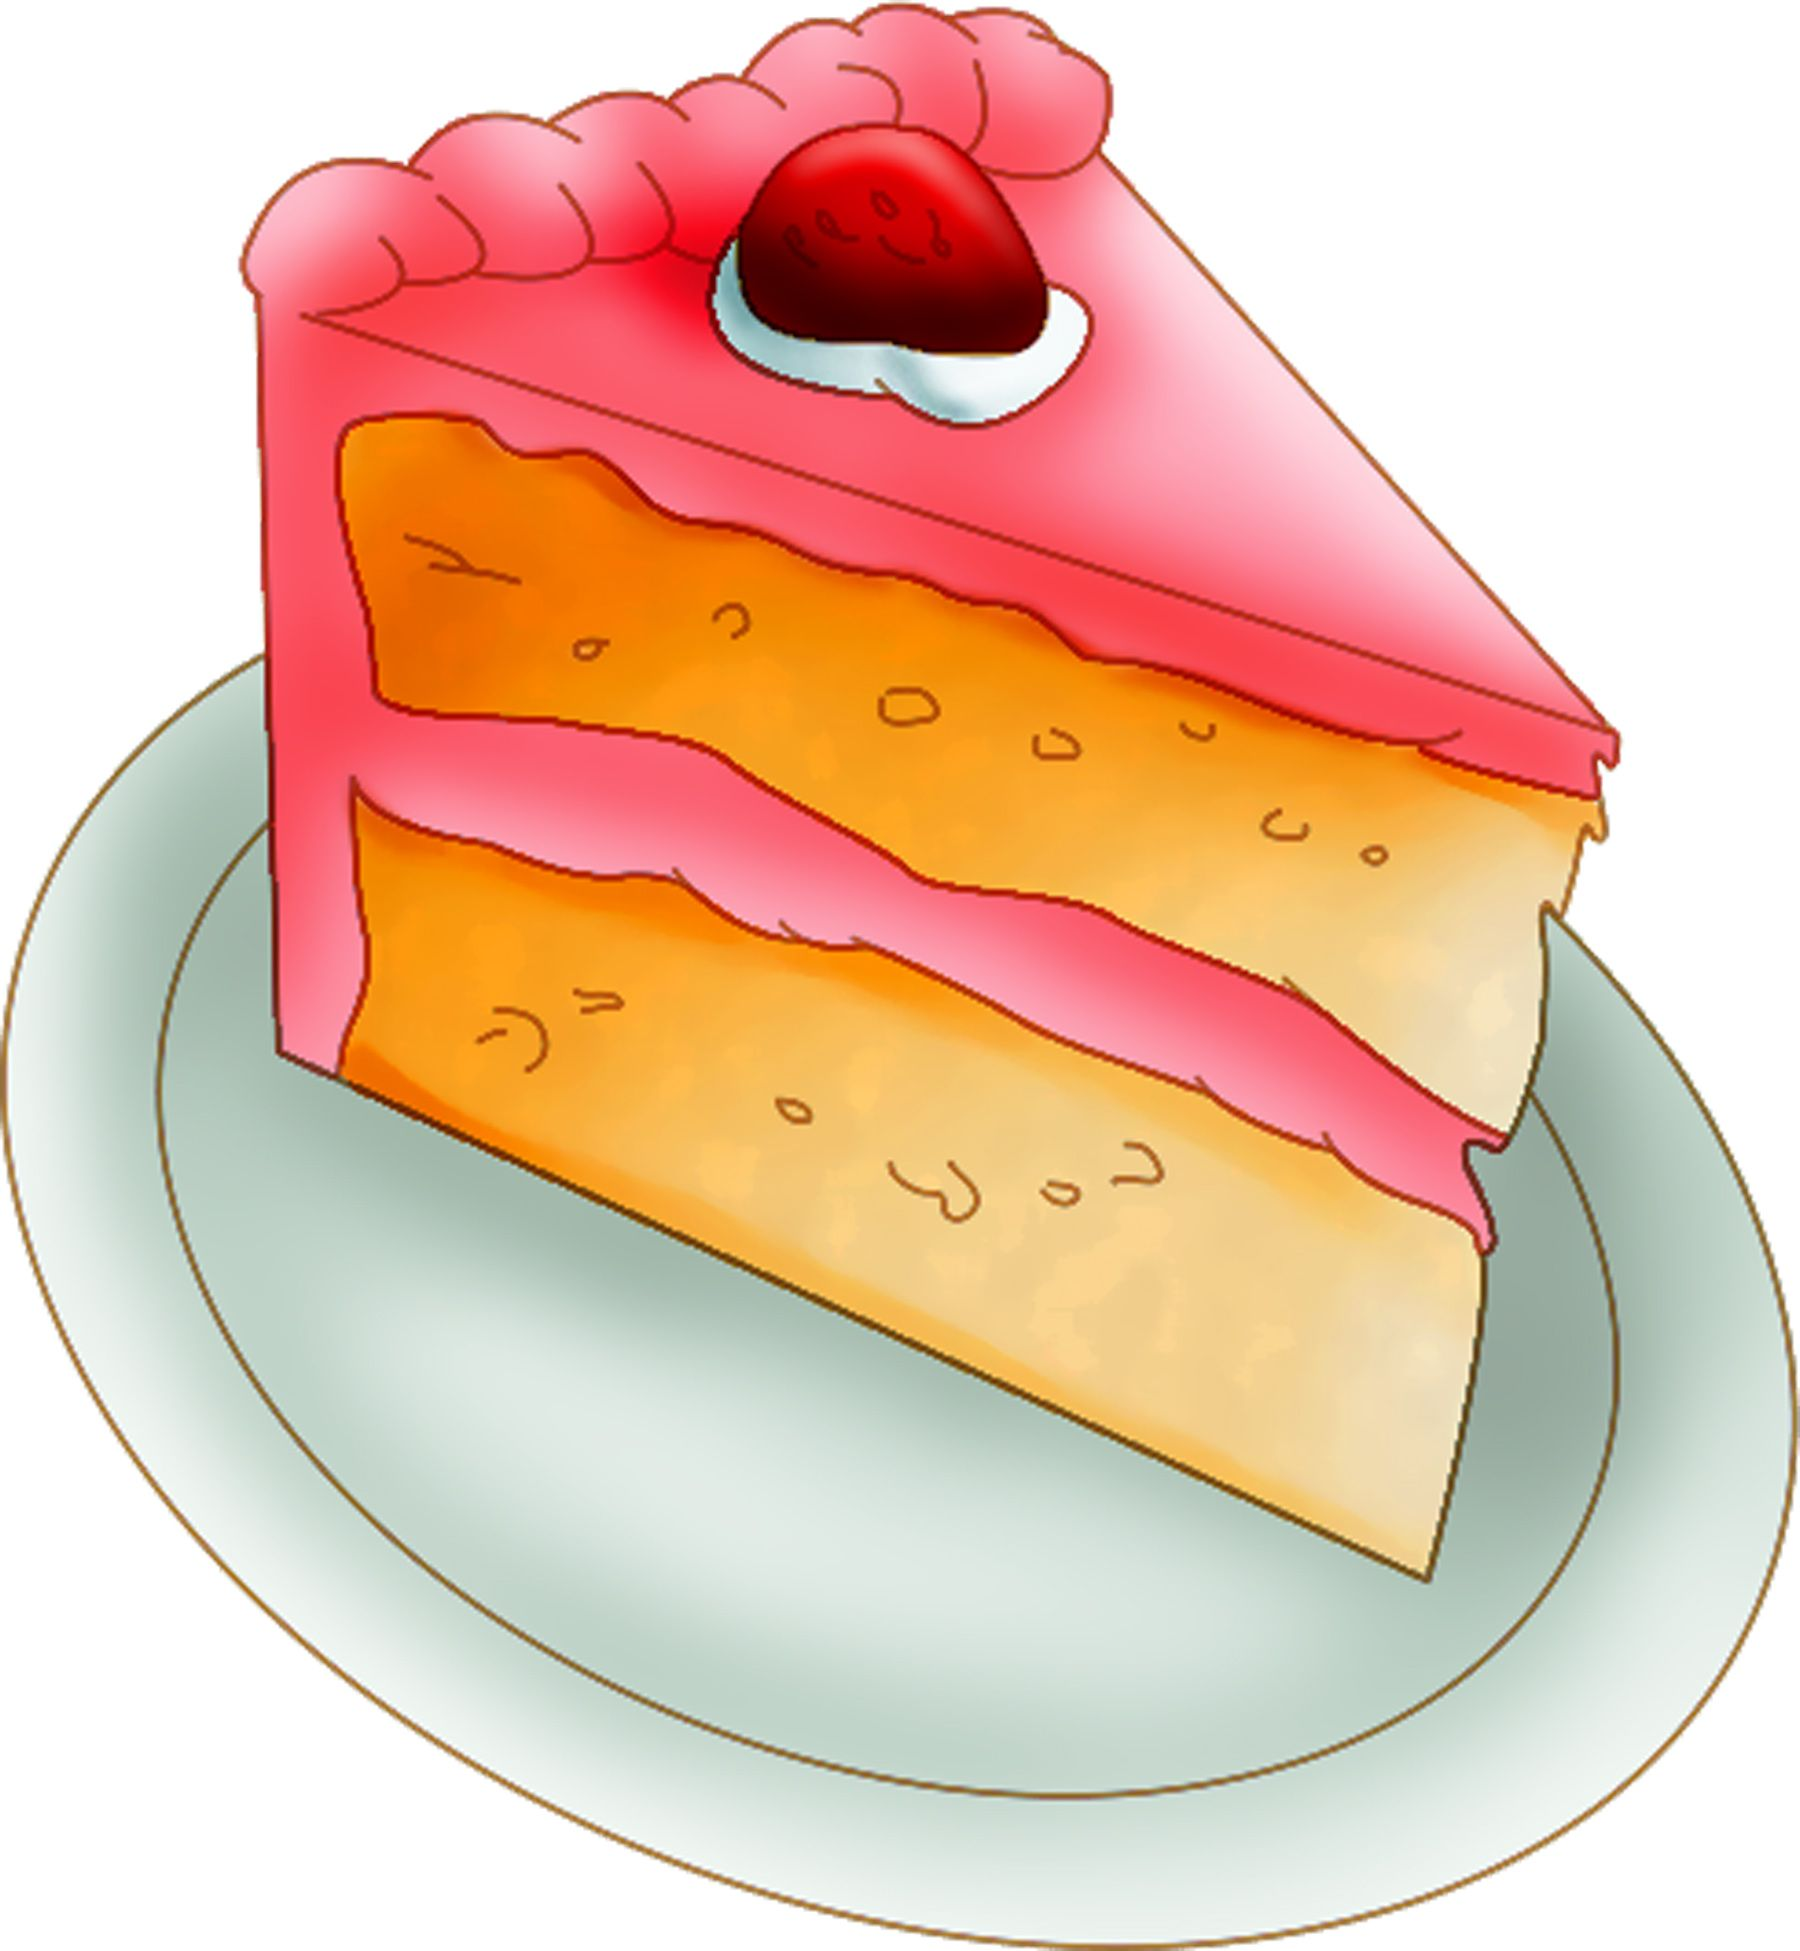 Free Cakes And Cookies Artwork